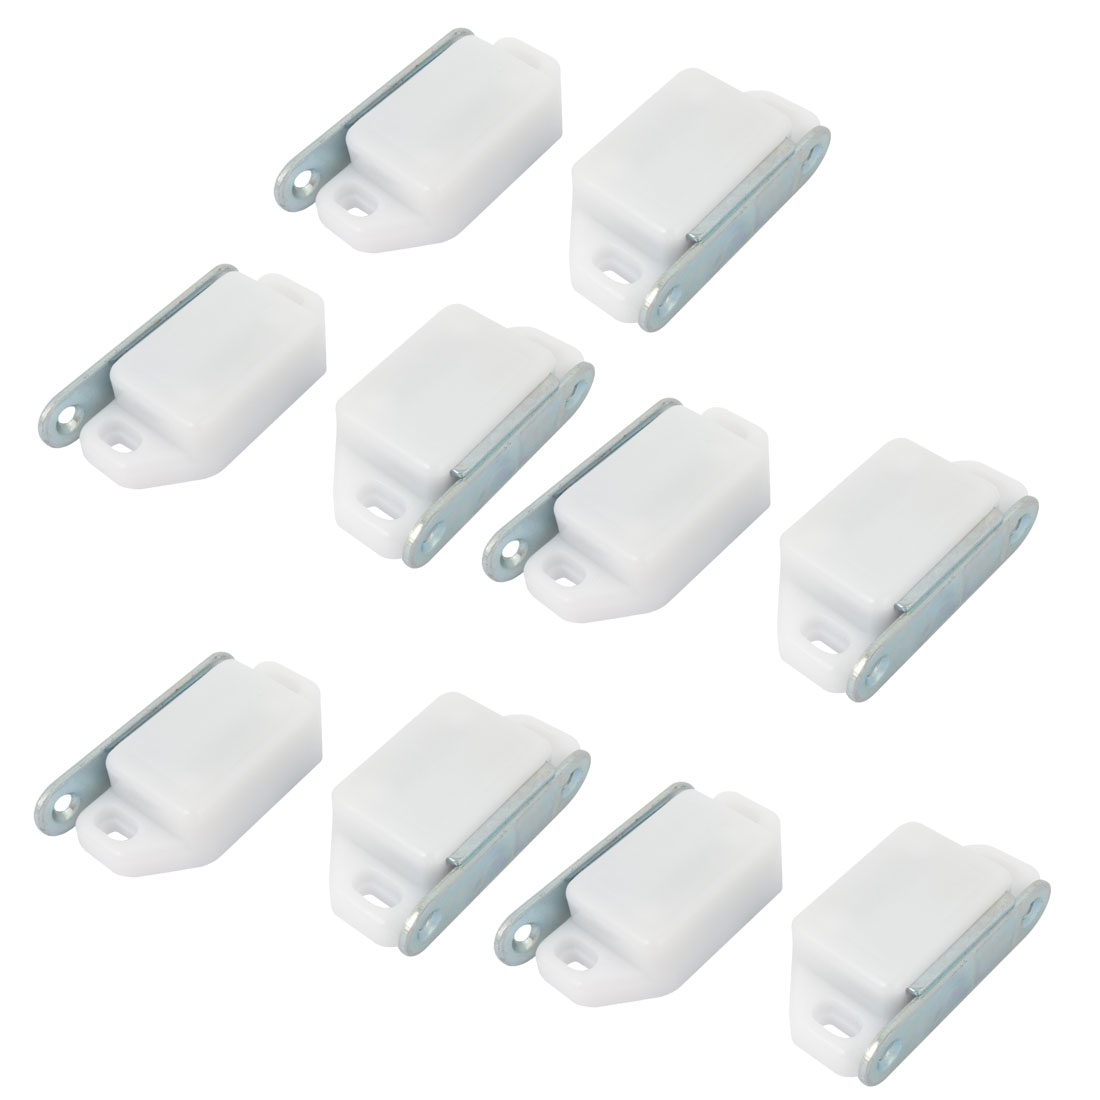 "2.4"" Length Cabinet Door White Plastic Metal Plate Magnetic Catch Latch 10 in 1 Set"